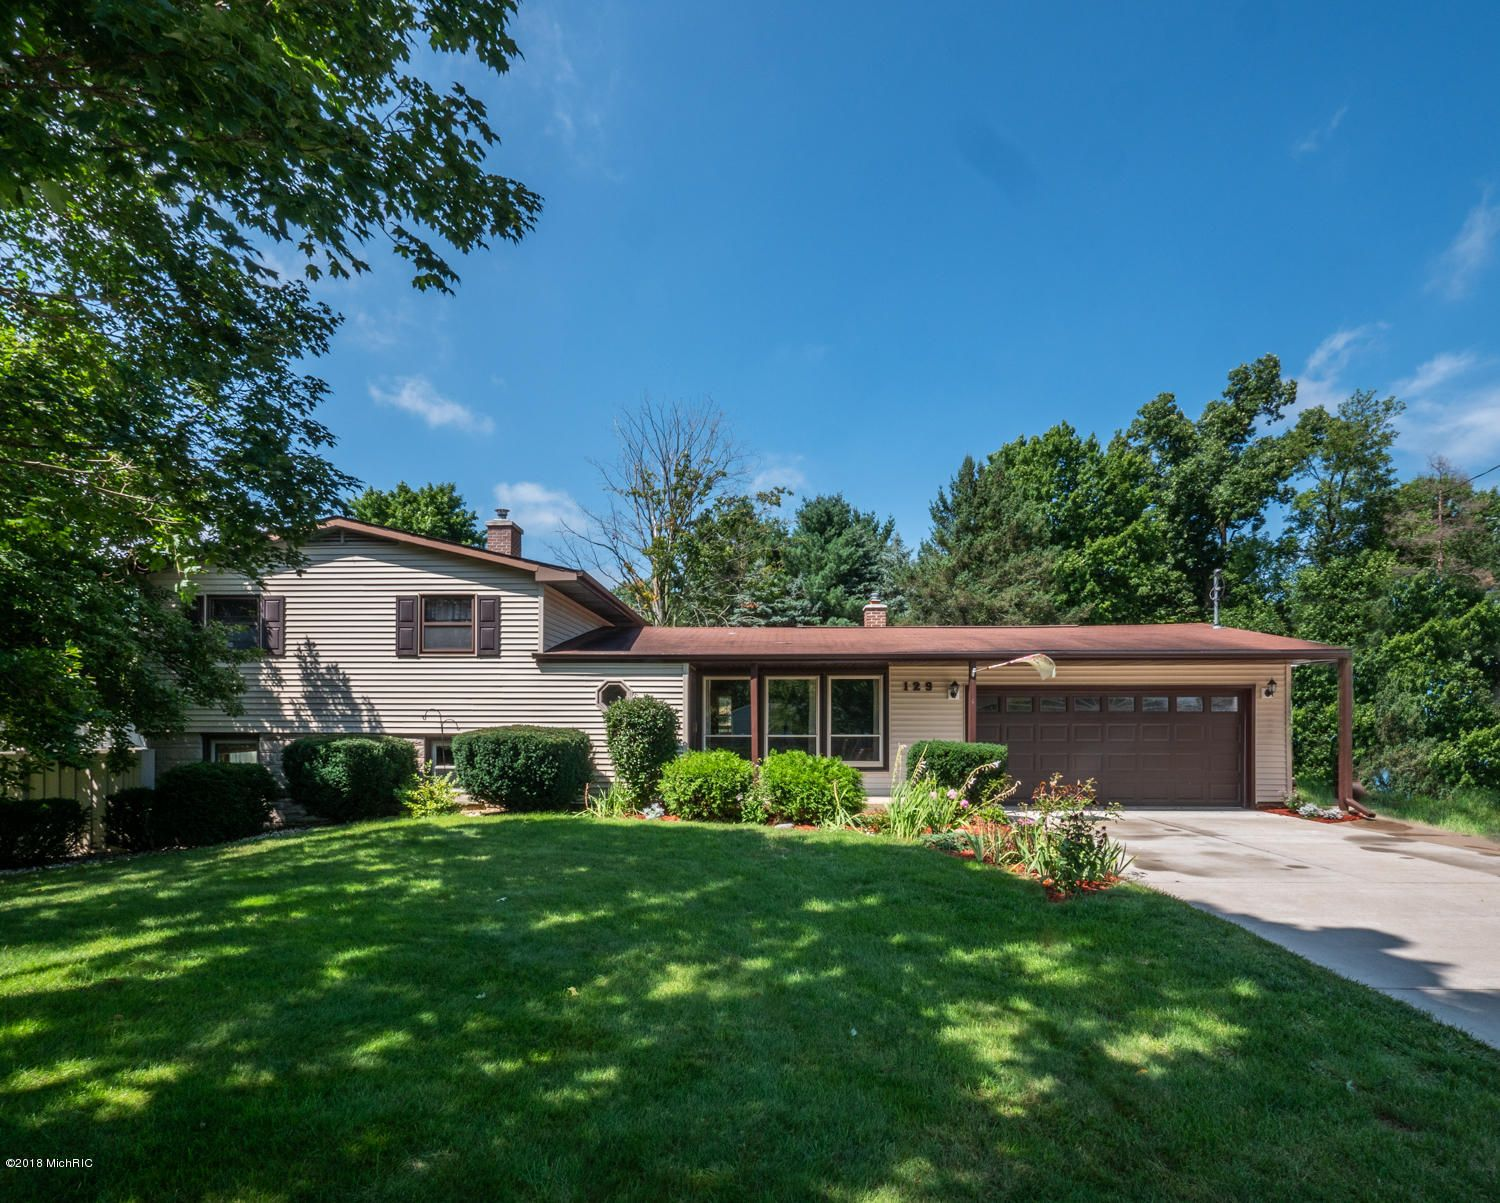 129 Beaumont Dr, Battle Creek, MI 49014 | Trulia